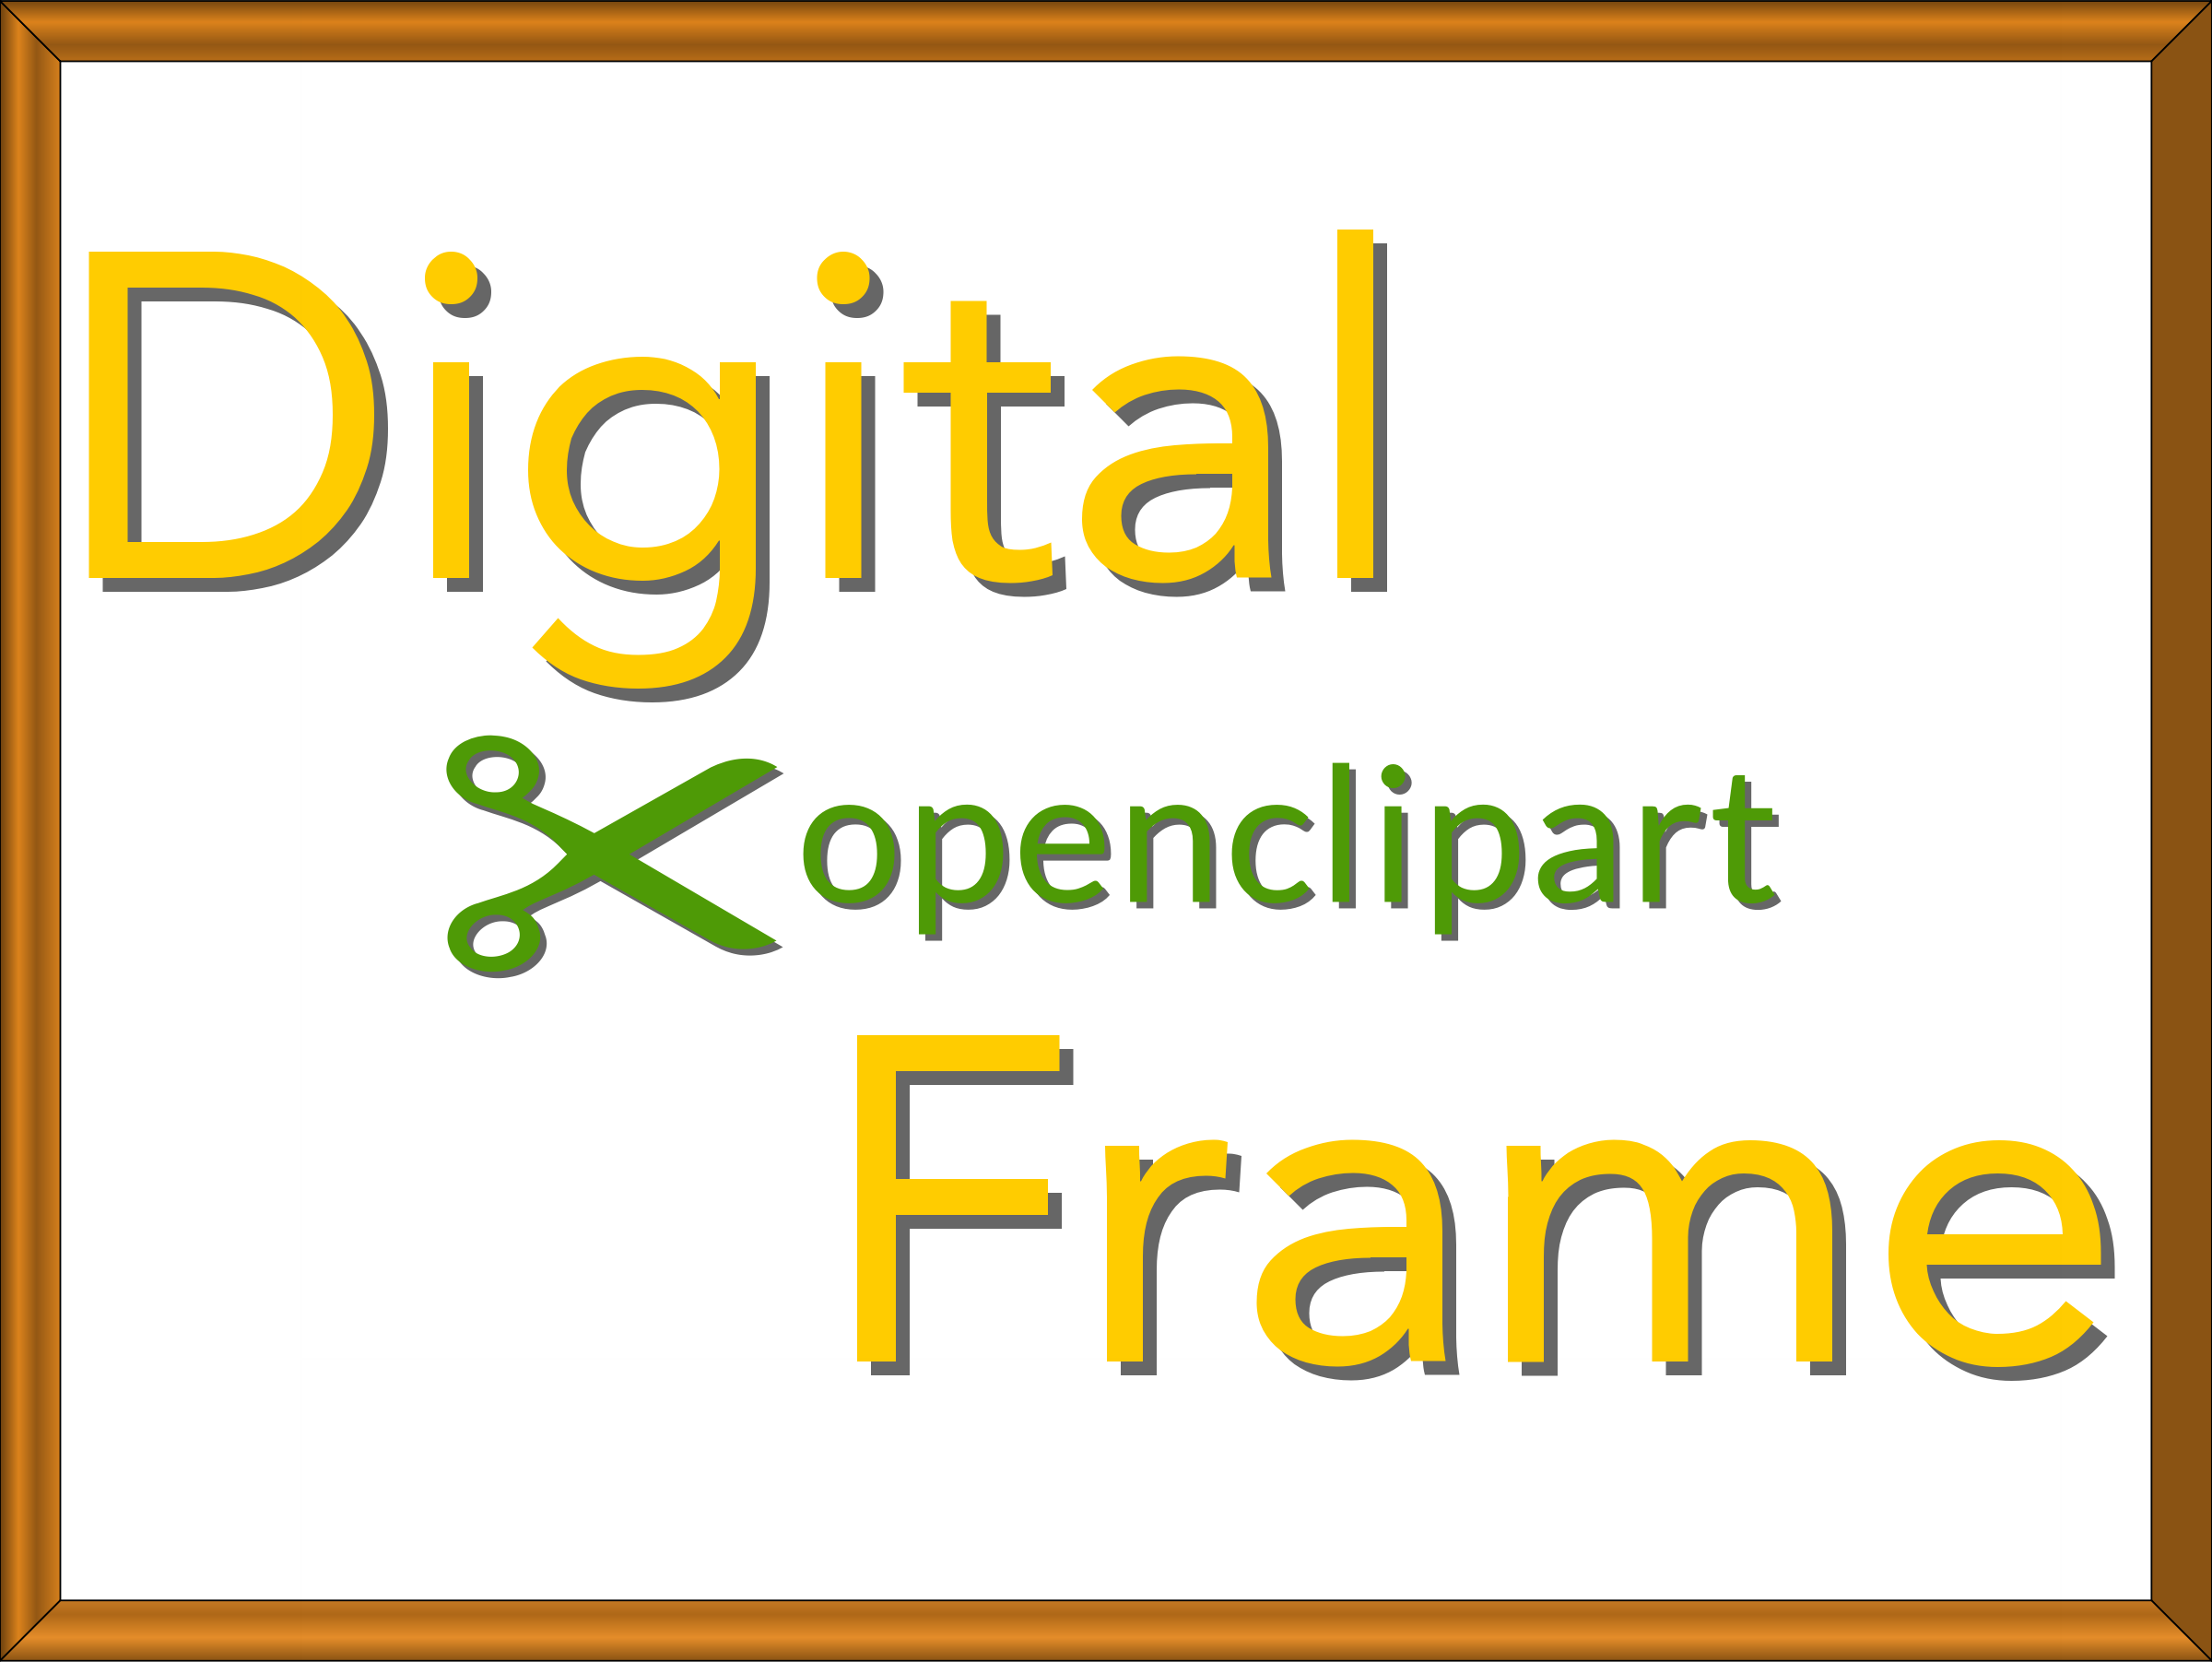 Digital OpenClipArt Frame 4x3 by JayNick